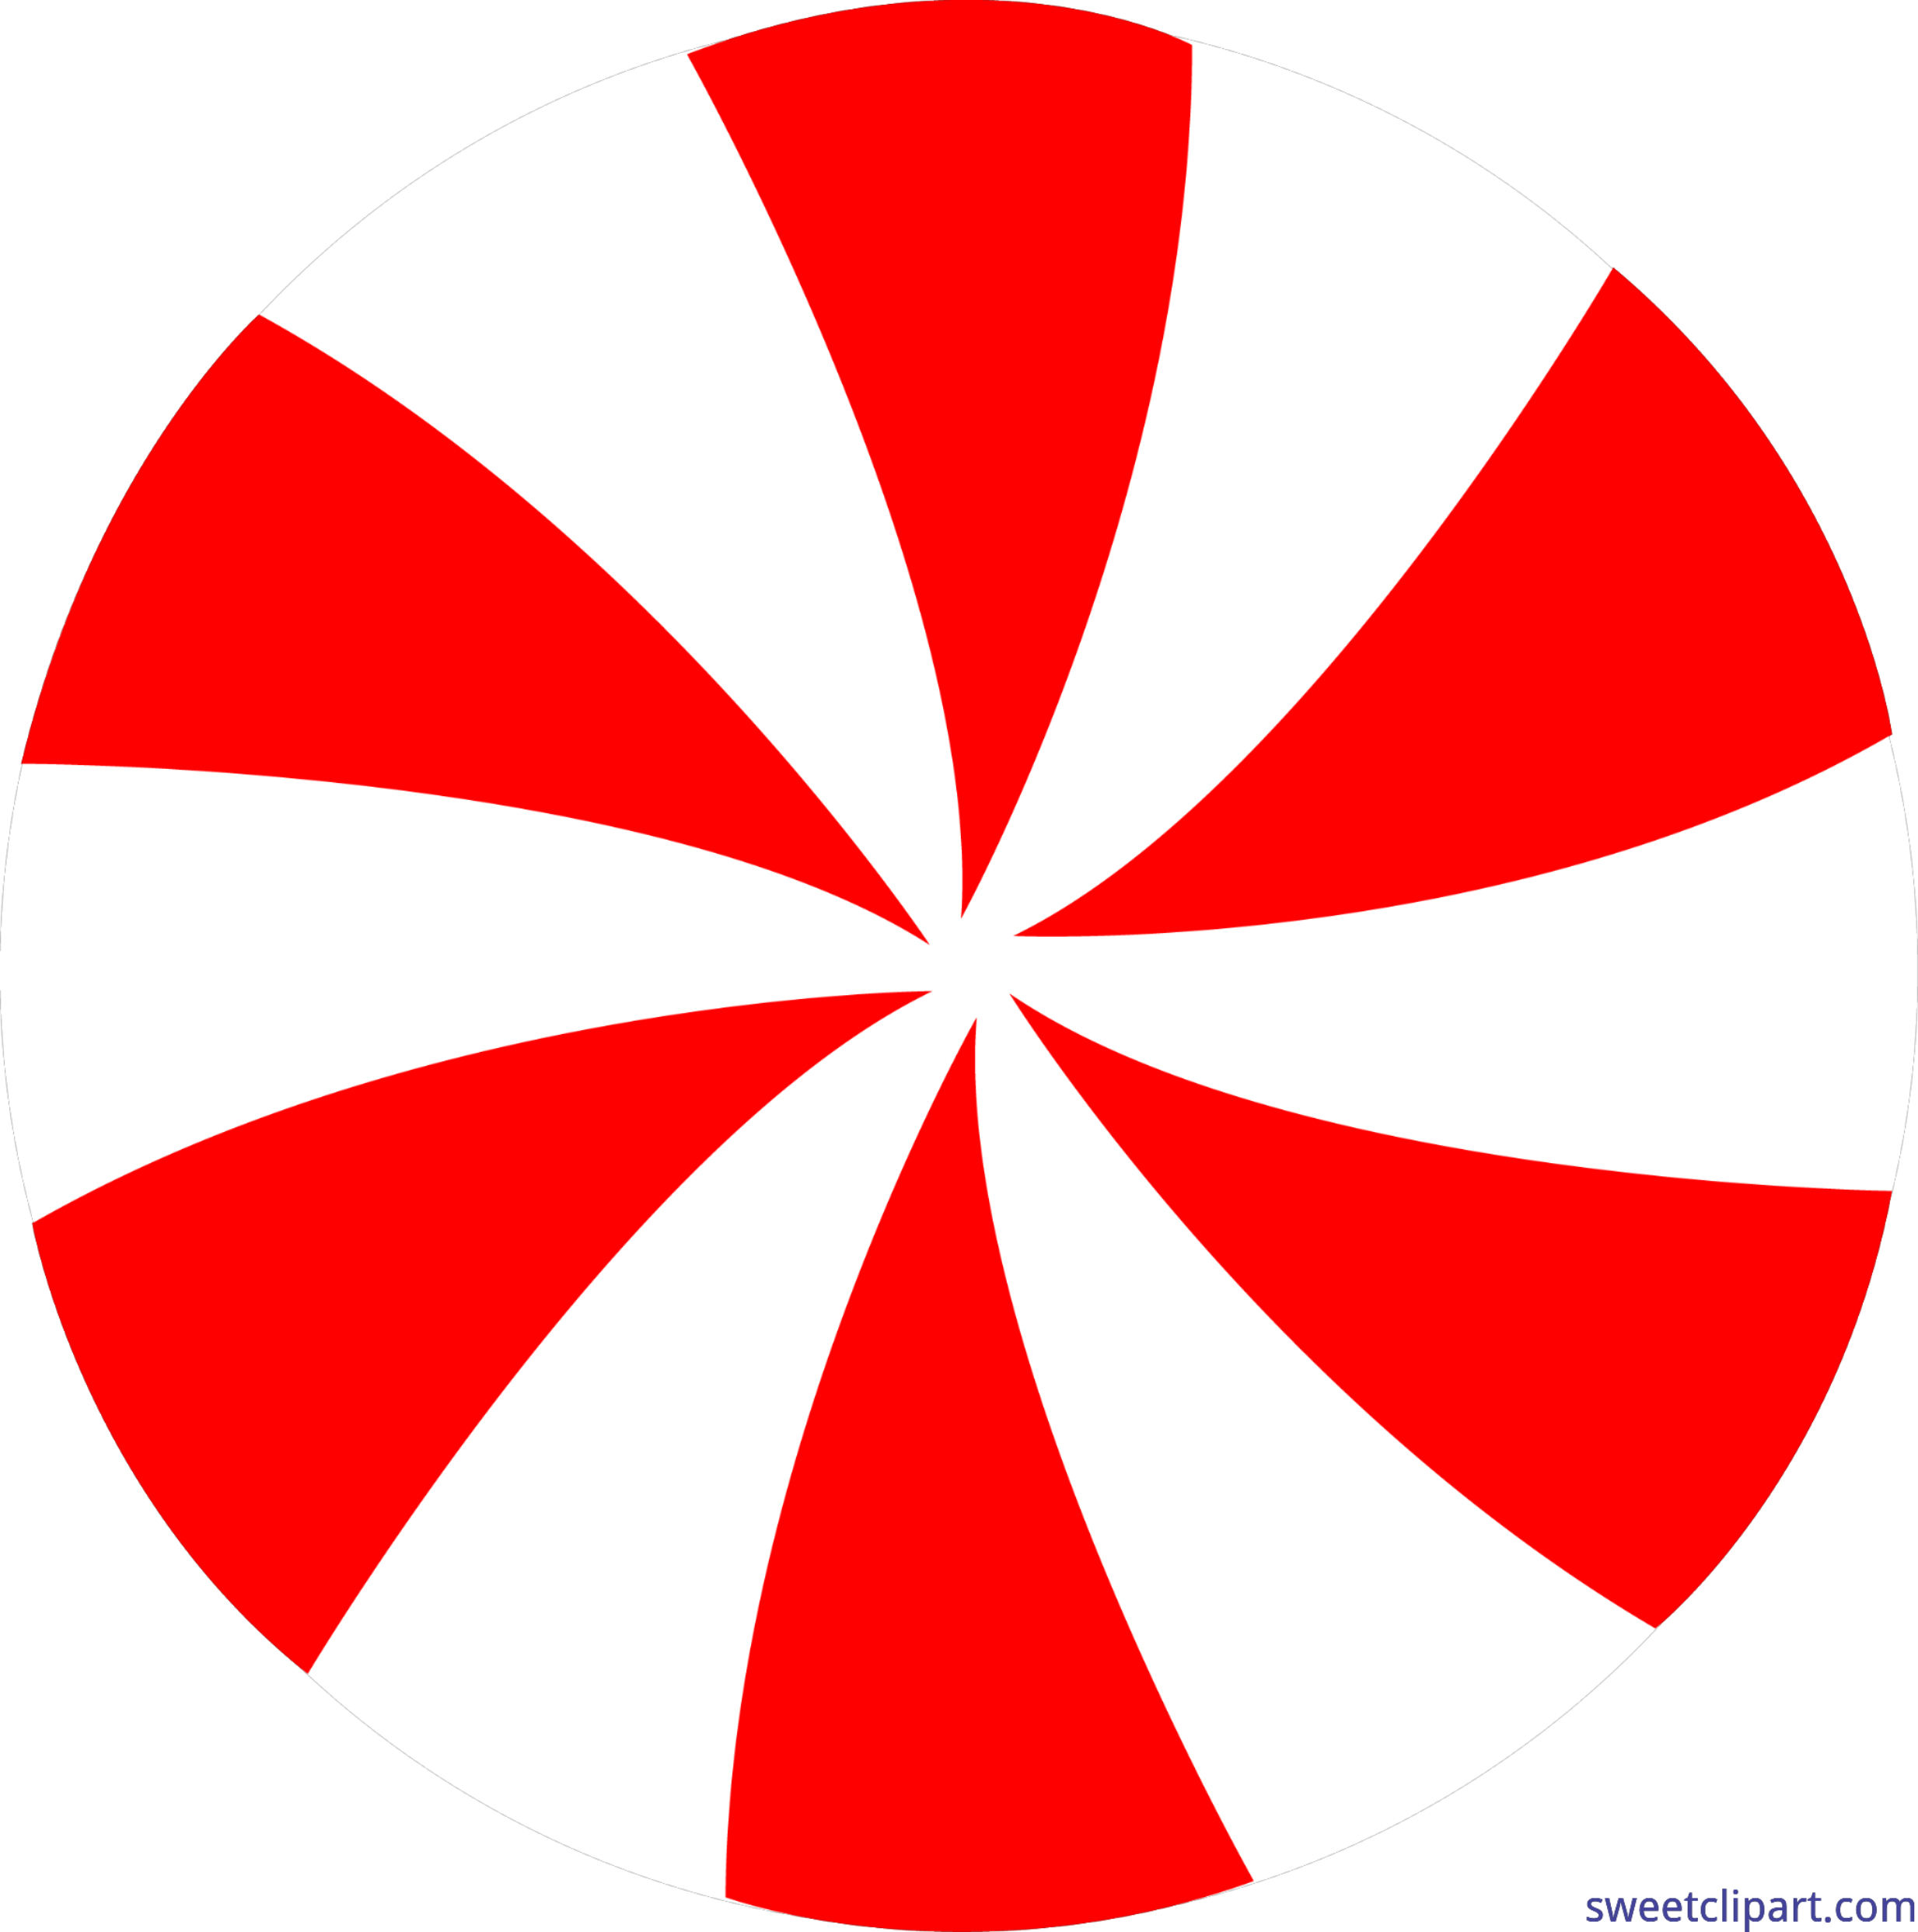 Peppermint clipart. Candy pinwheel red clip